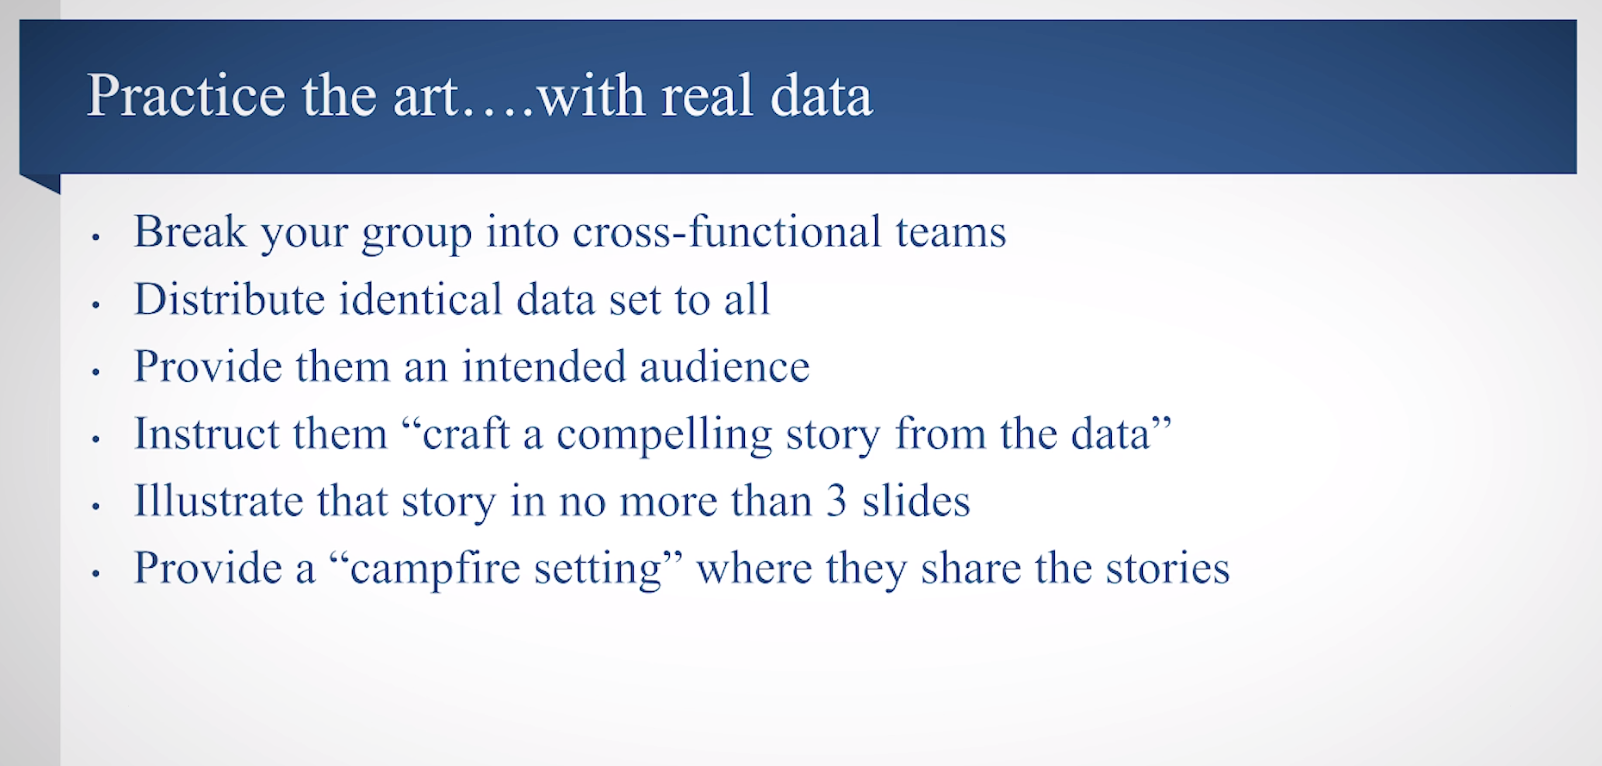 In this slide from his presentation, JD Schramm outlines how to perfect storytelling with data in your organization.